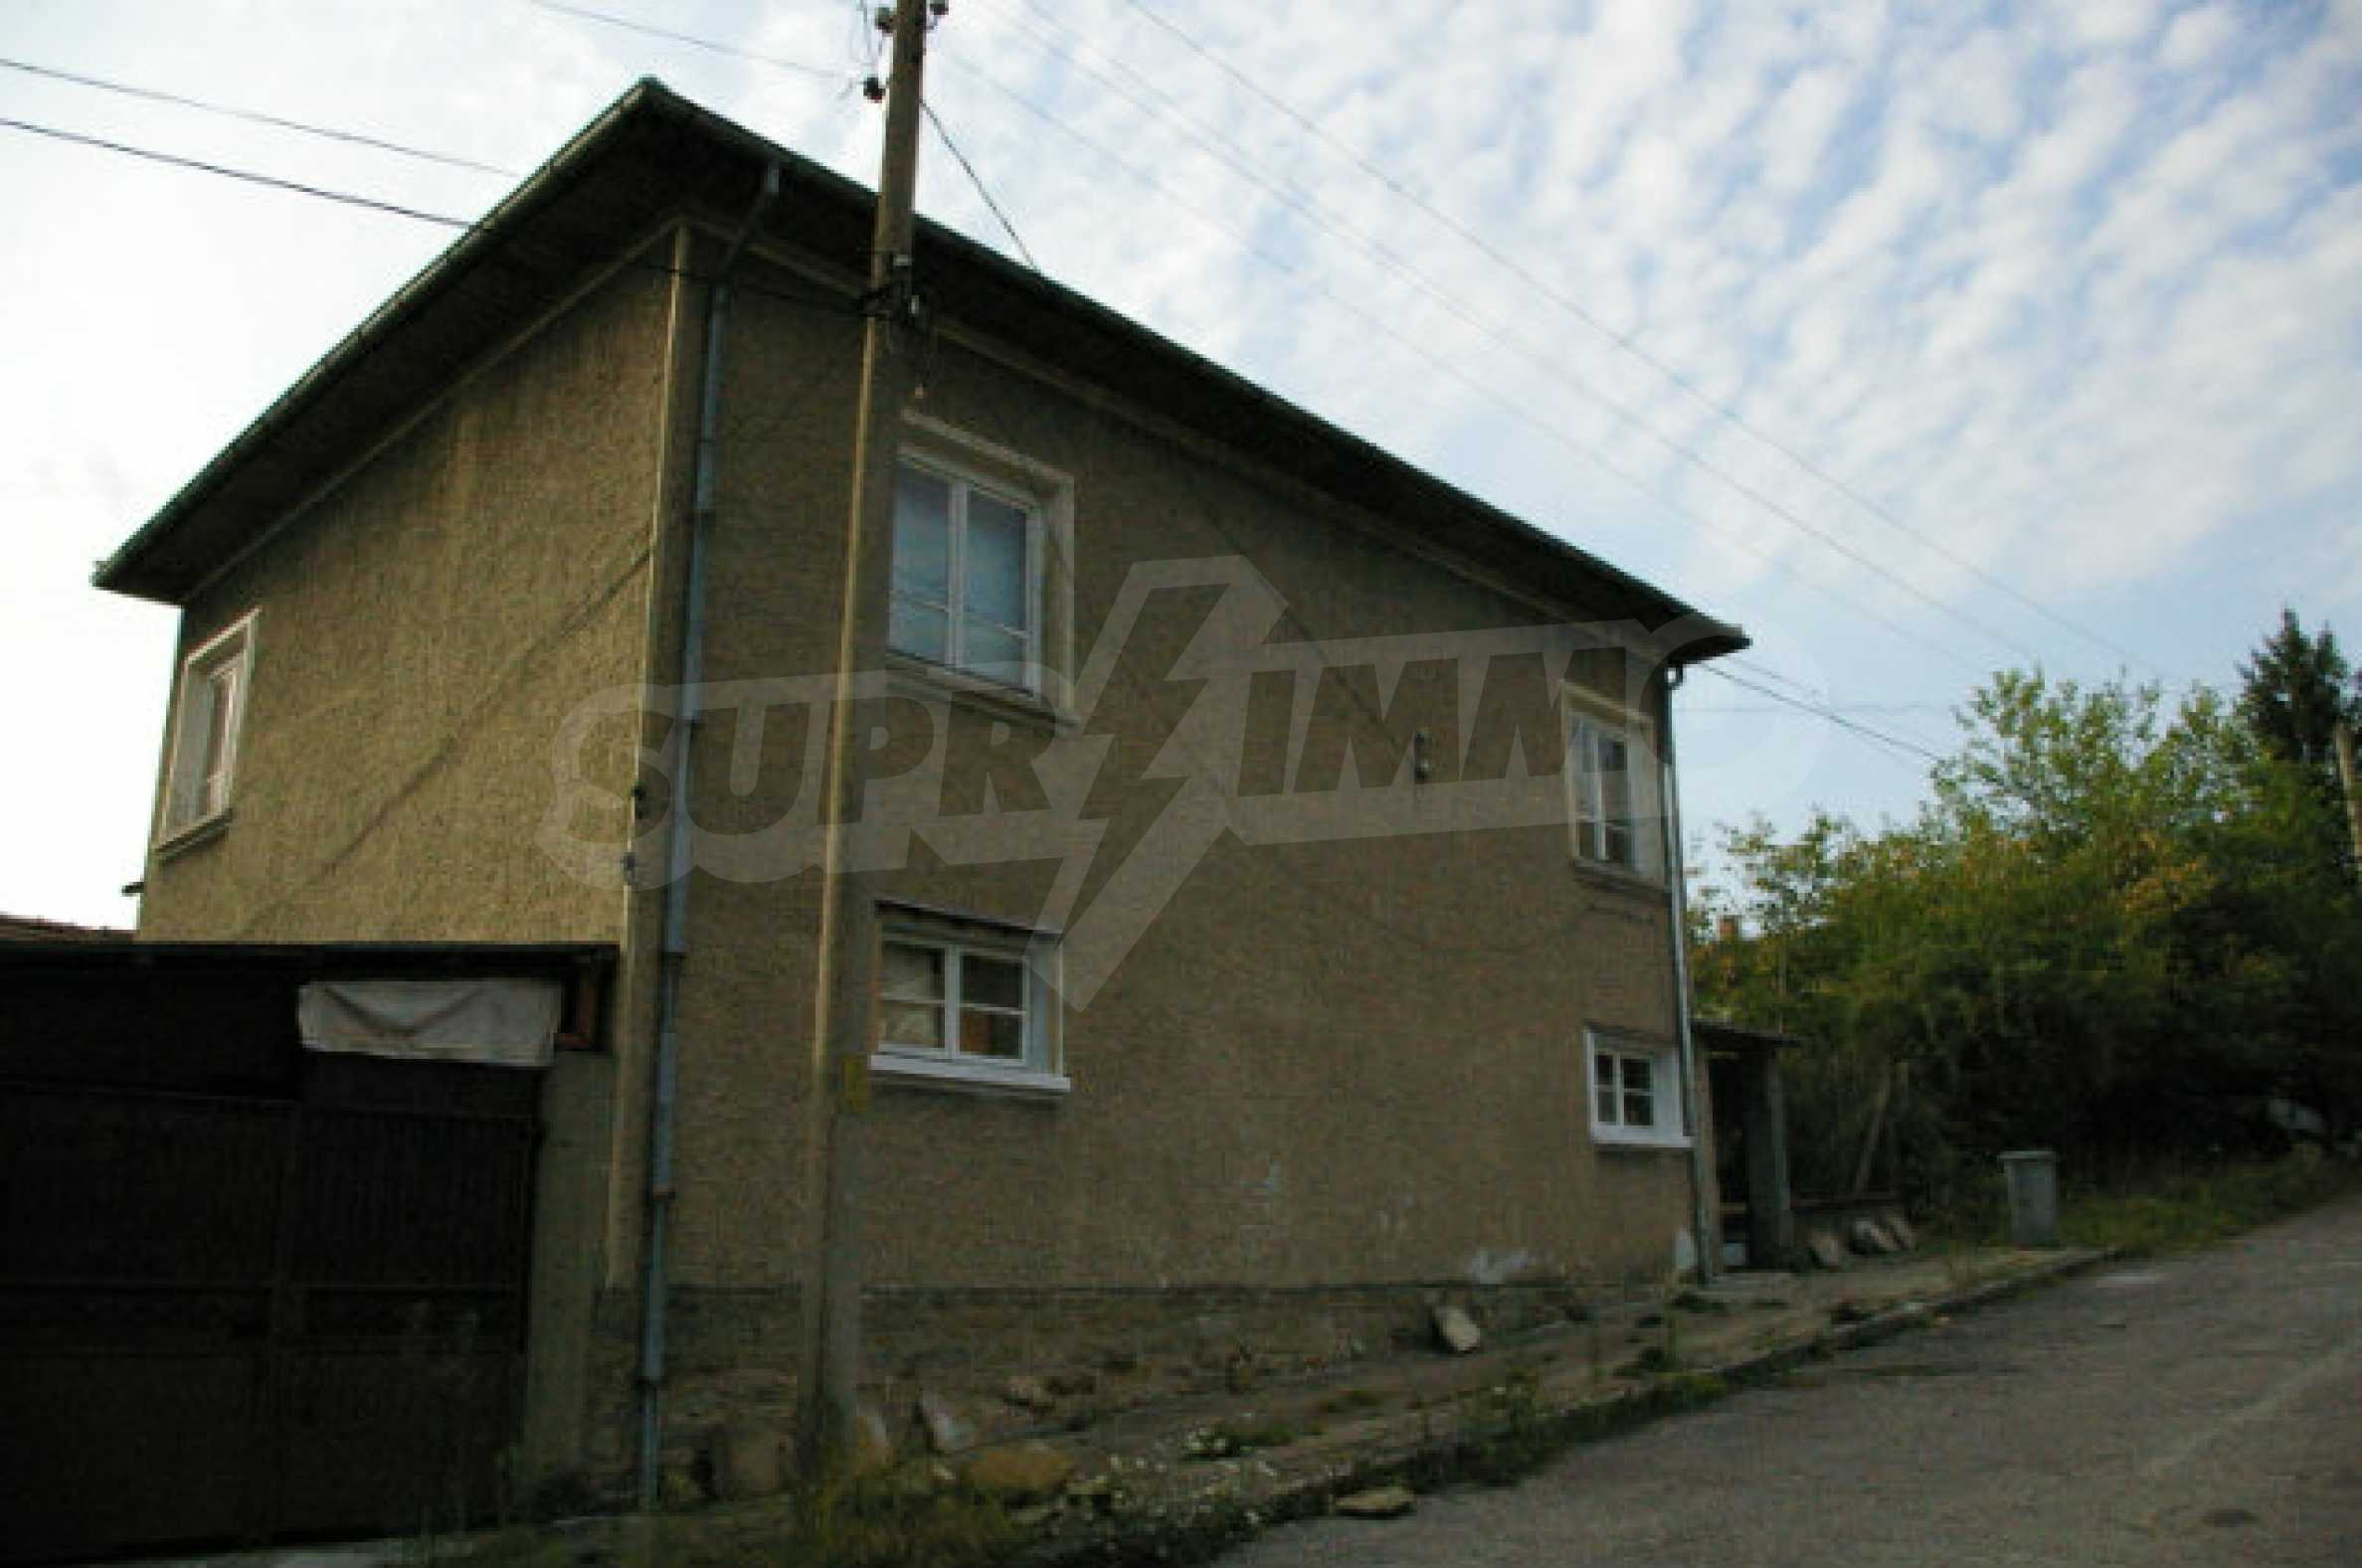 Spacious house with garage in an area with beautiful scenery 4